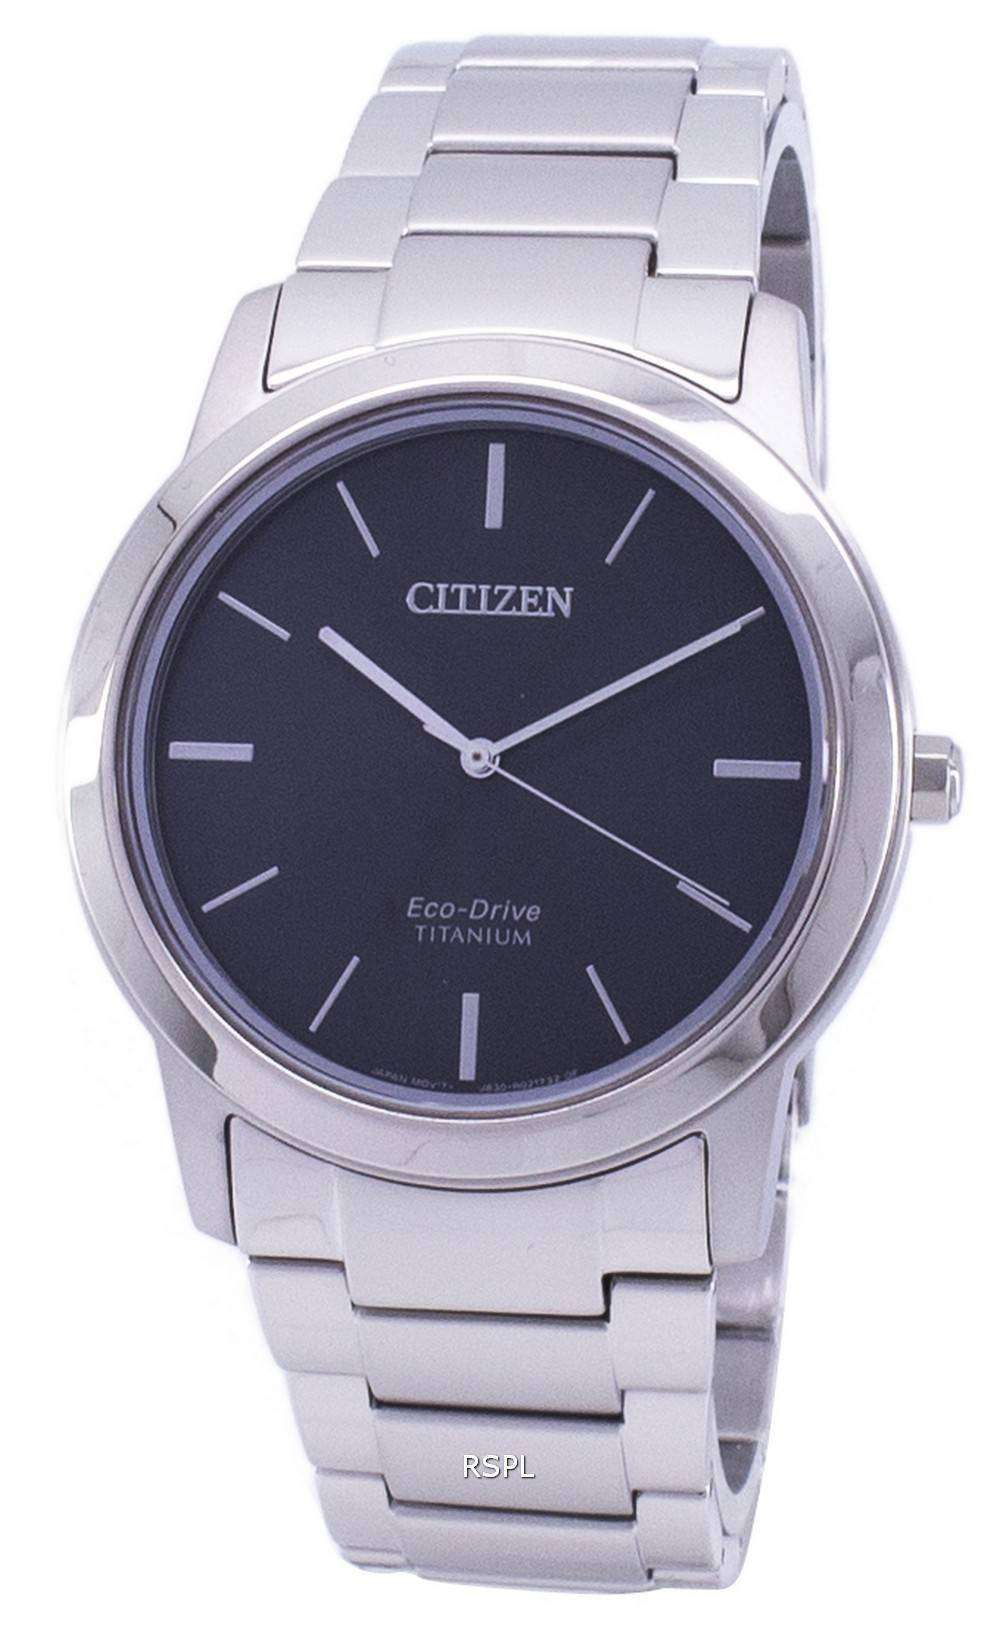 Citizen Watch Aw2020 Drive Eco Titanium Men's 82l xhtdCsQr